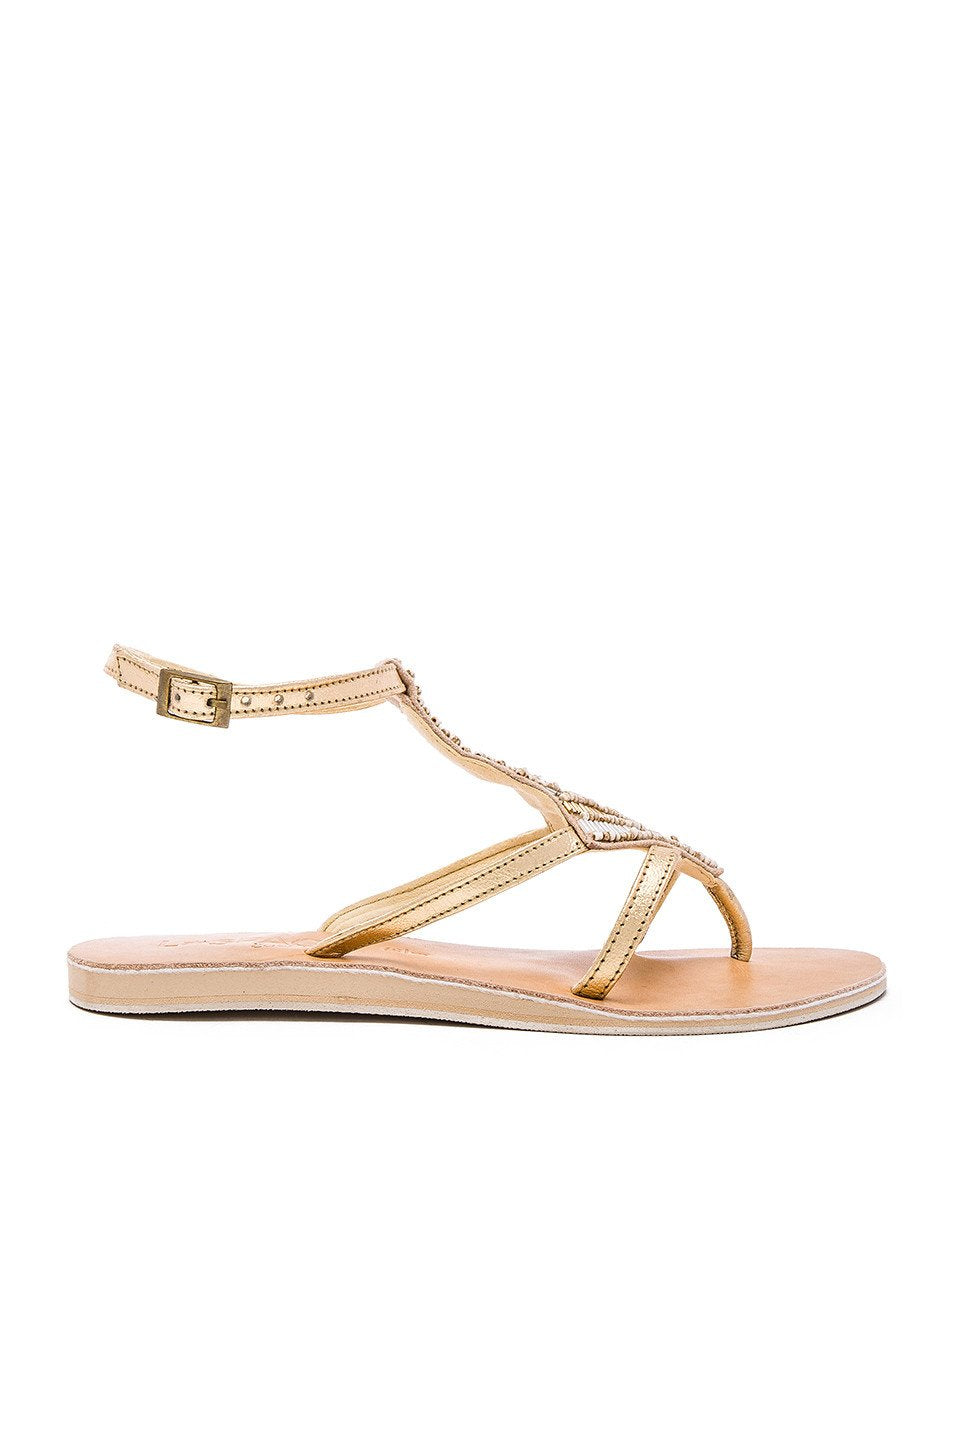 Arrow Sandals - Kustom Label - 1